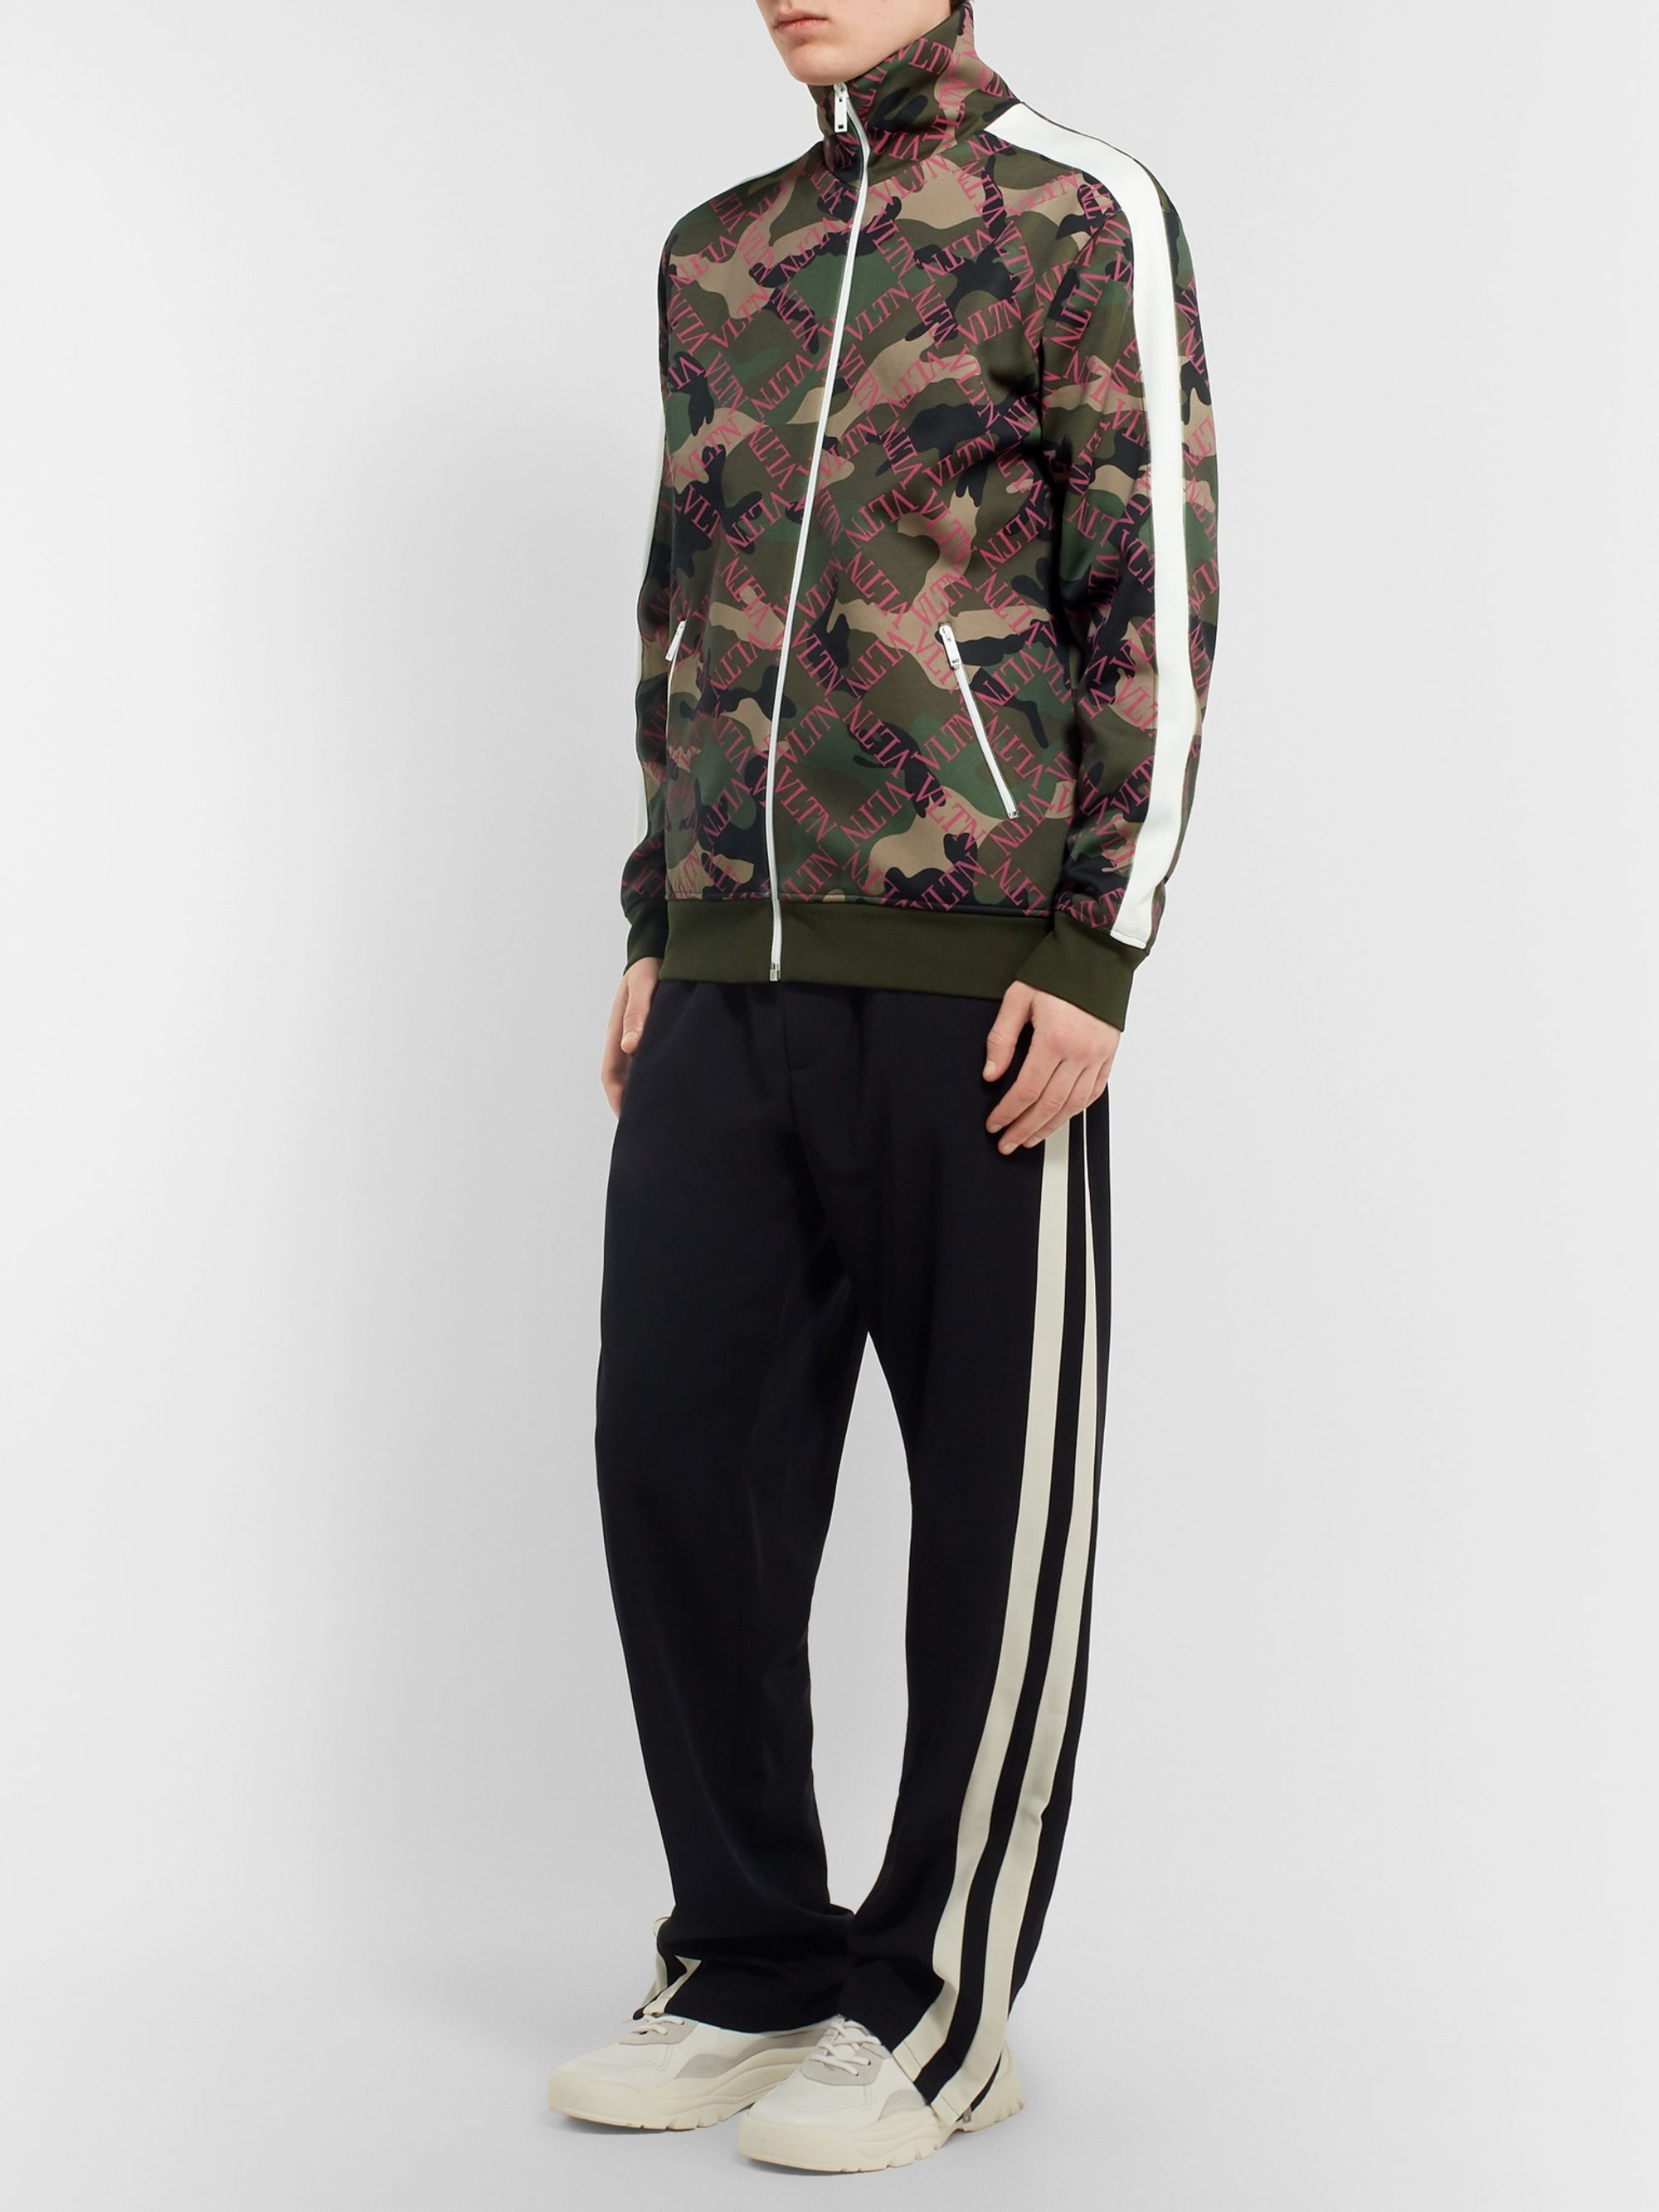 Valentino Slim-Fit Logo and Camouflage-Print Satin-Jersey Track Jacket